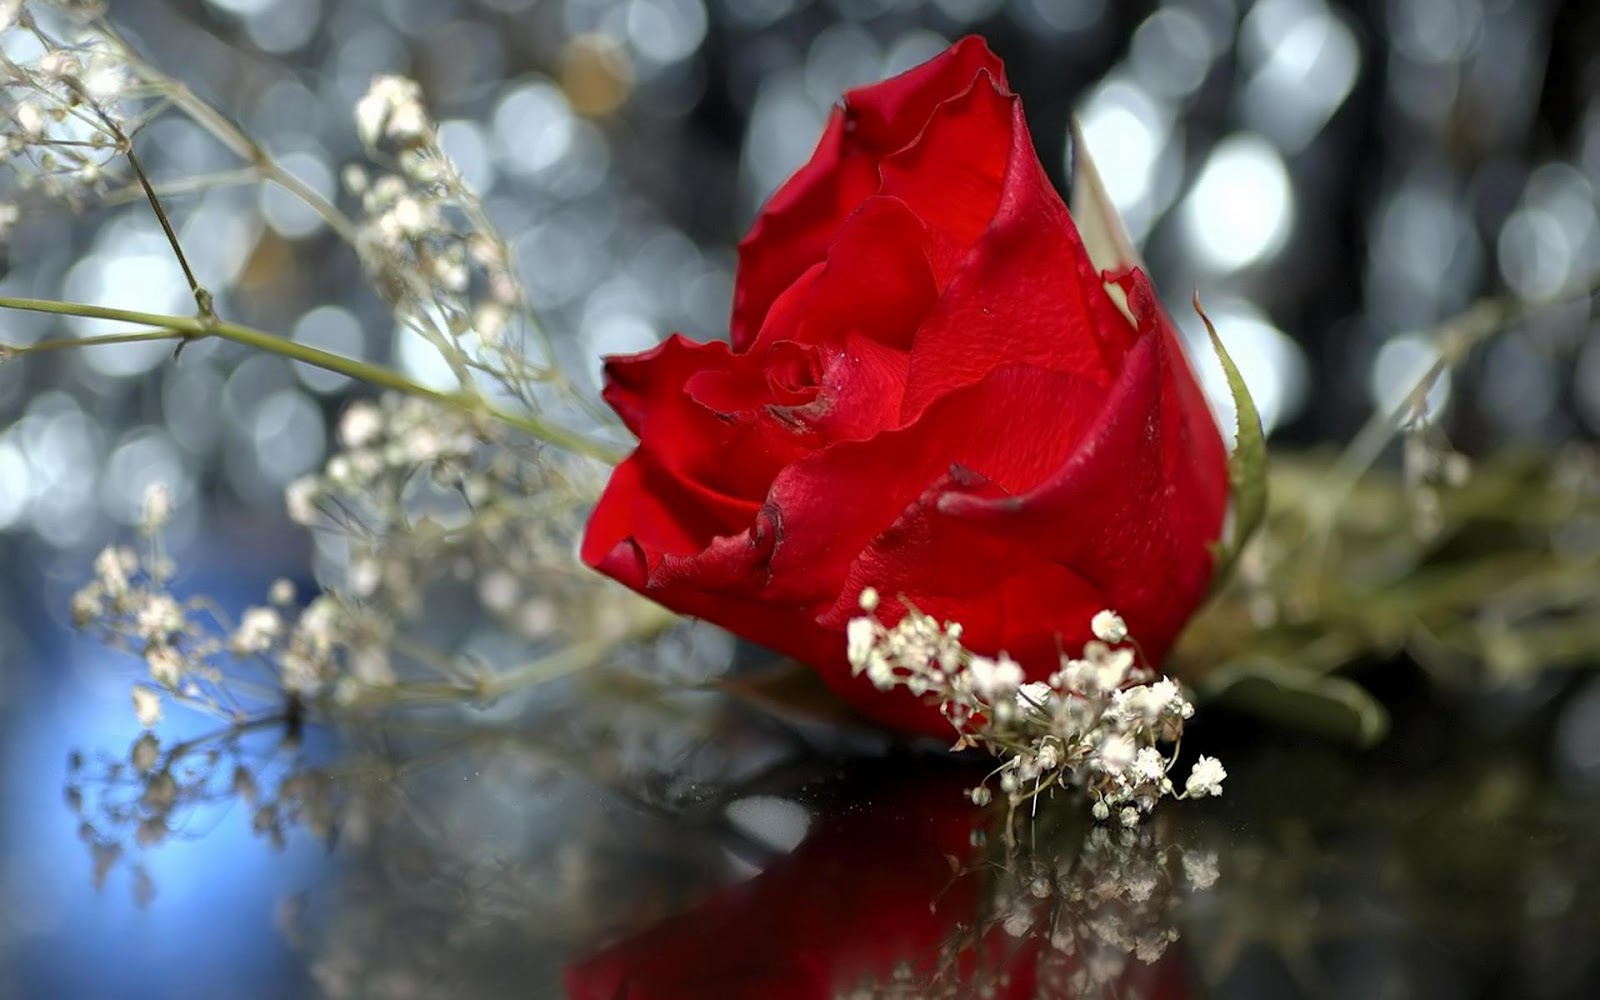 http://1.bp.blogspot.com/-3bd9xQ0yJck/T1wD7N-g_uI/AAAAAAAAADc/54INoVcYzJY/s1600/Wedding_red_rose_hd_wallpaper.jpg